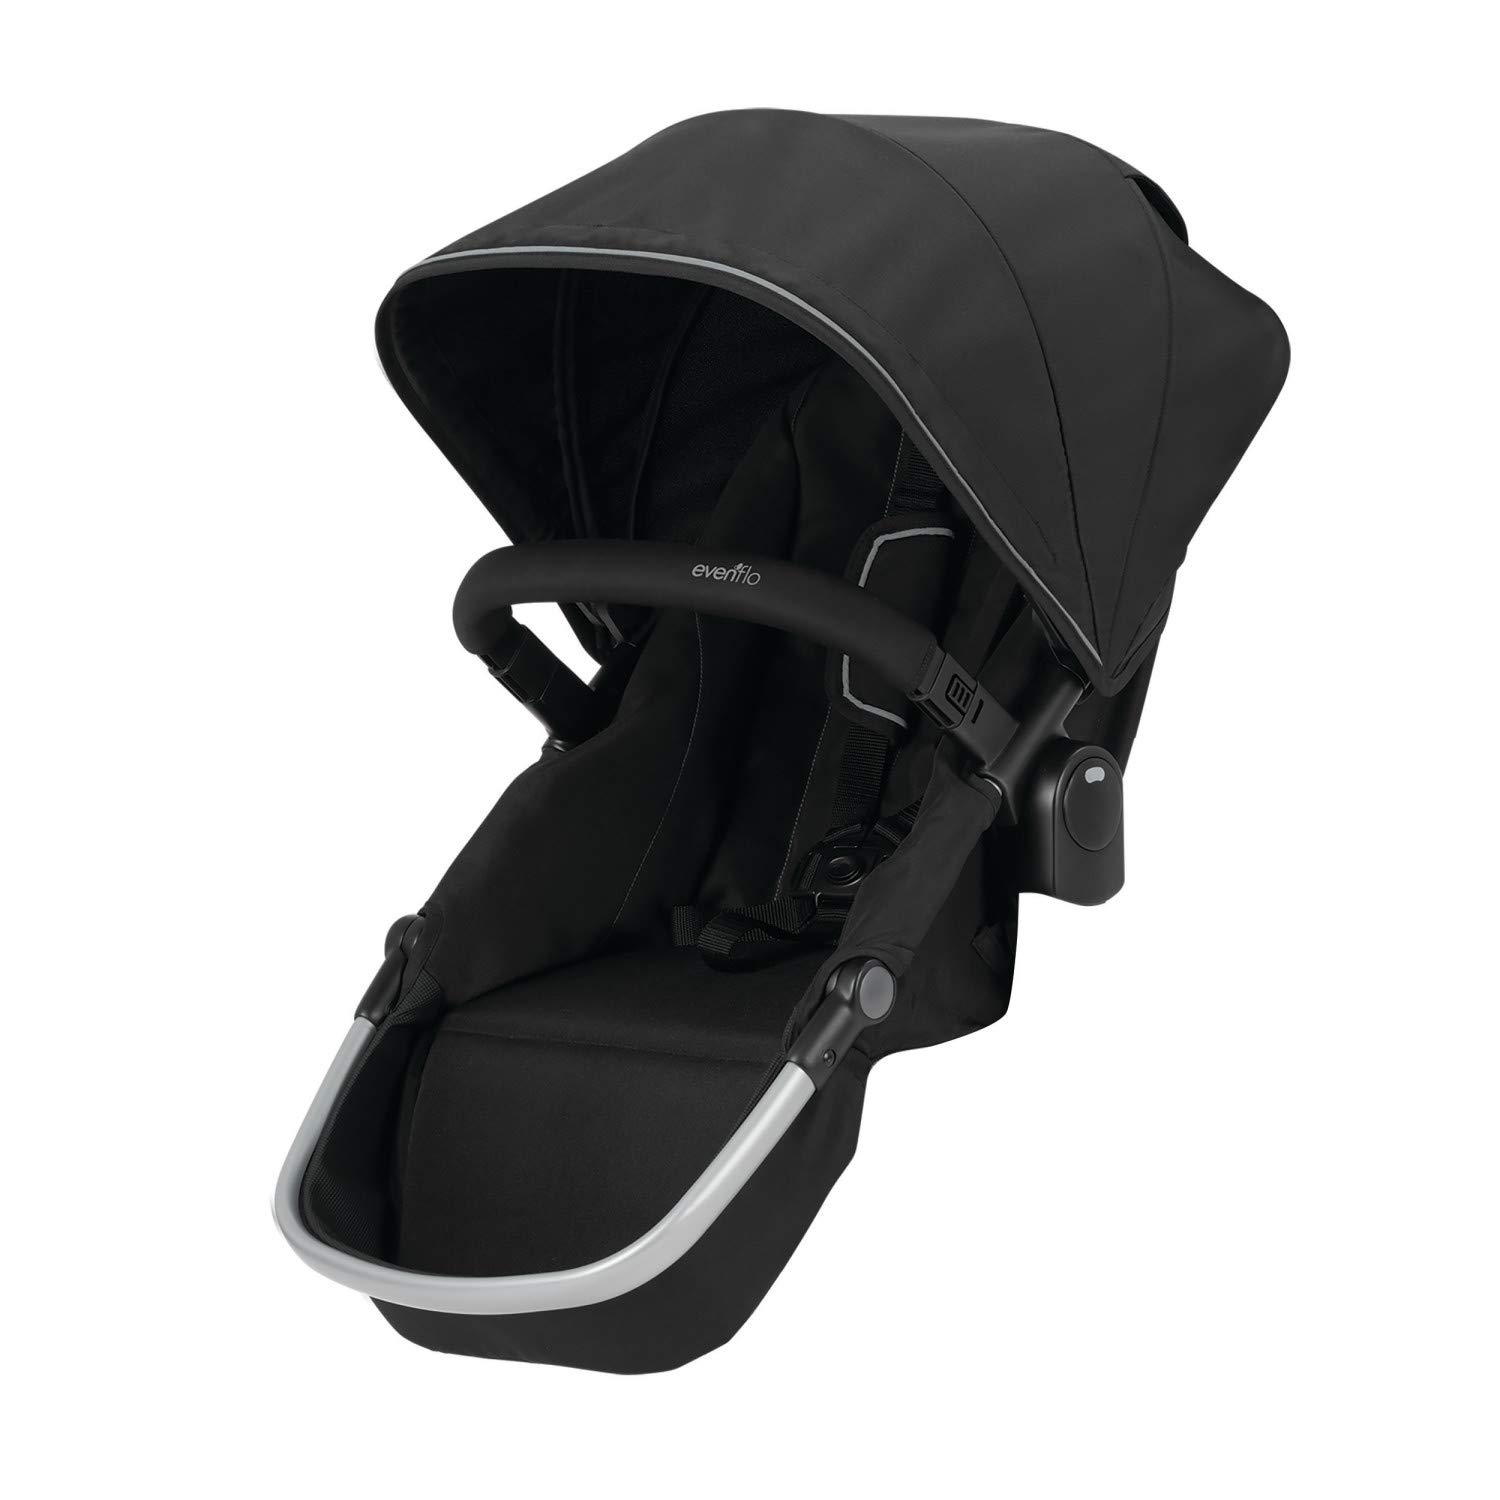 Evenflo Pivot Xpand Modular Stroller Second Seat, Compatible with Evenflo Pivot Xpand Modular Travel System and Modular Stroller, Holds Up to 55-lbs, Multiple Configurations, Stallion Black